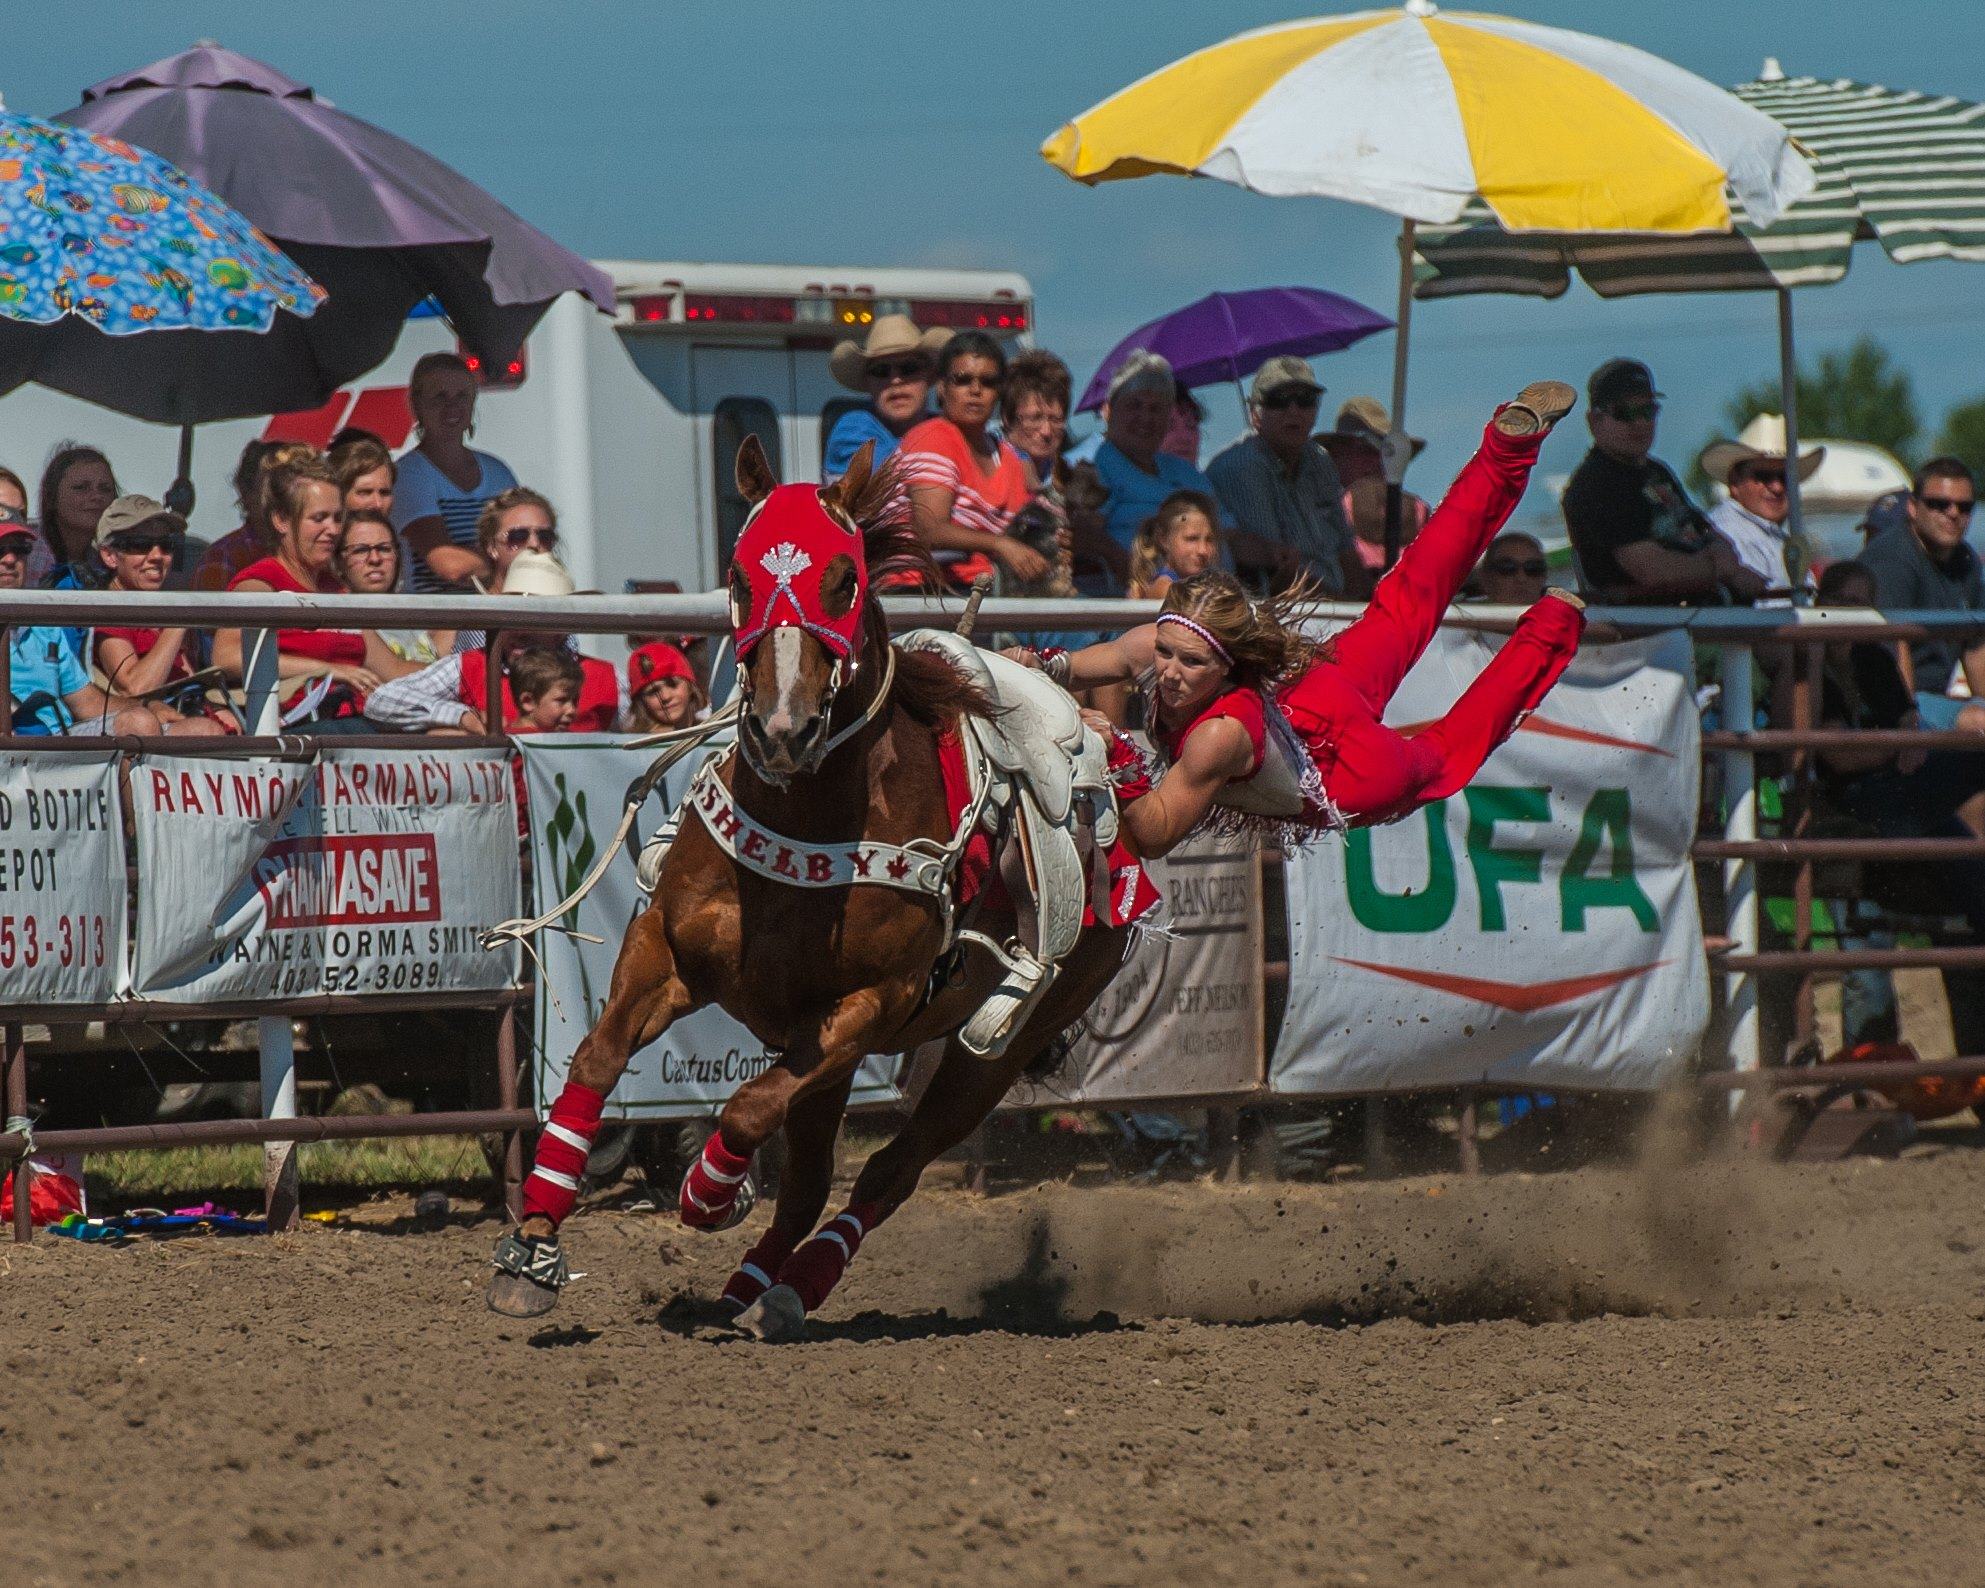 Crooper Vaults at the Raymond Rodeo